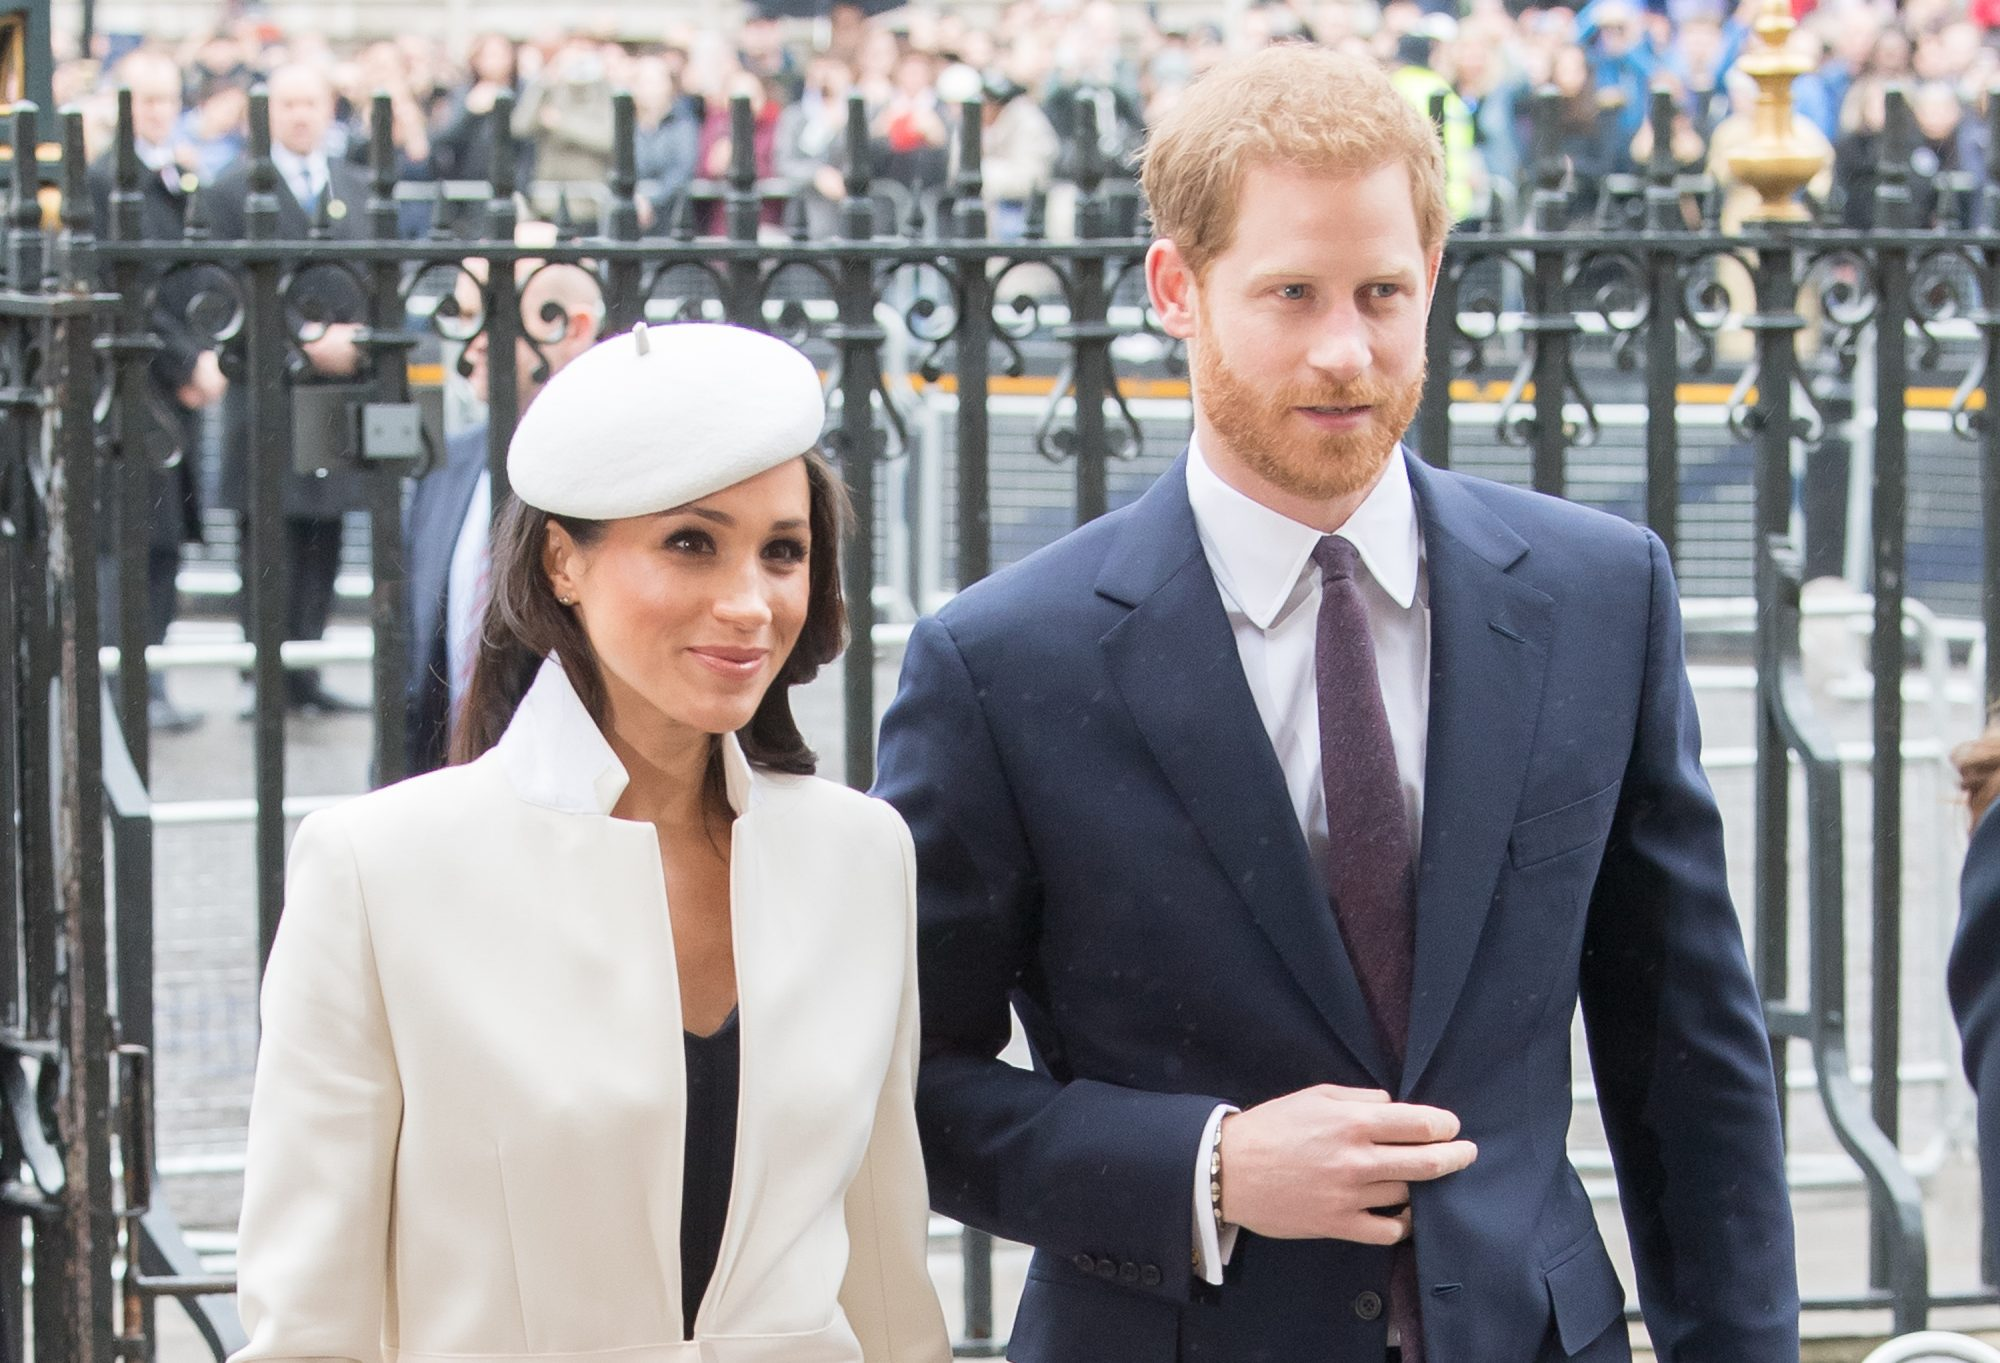 The Subtle Way Meghan Markle Paid Tribute Princess Diana at the Biggest Royal Event With the Queen